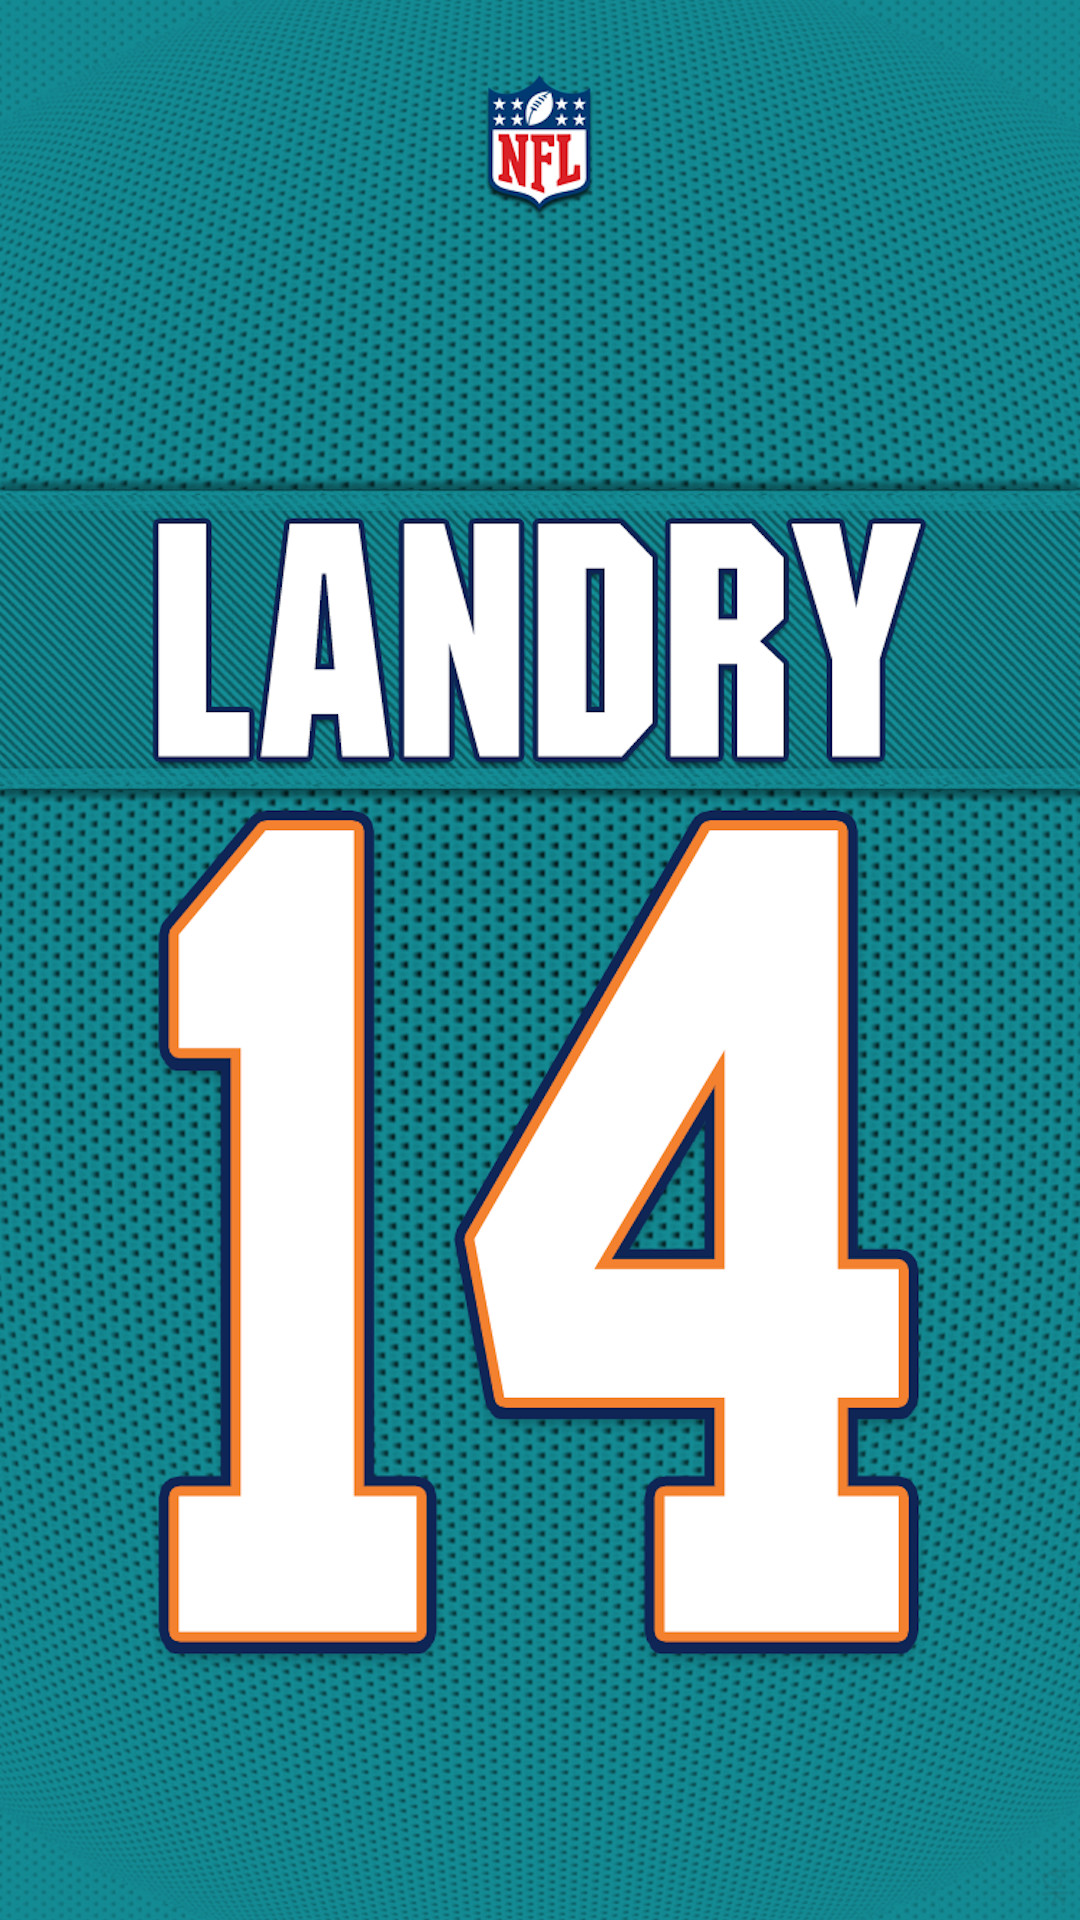 Miami Dolphins Landry.png